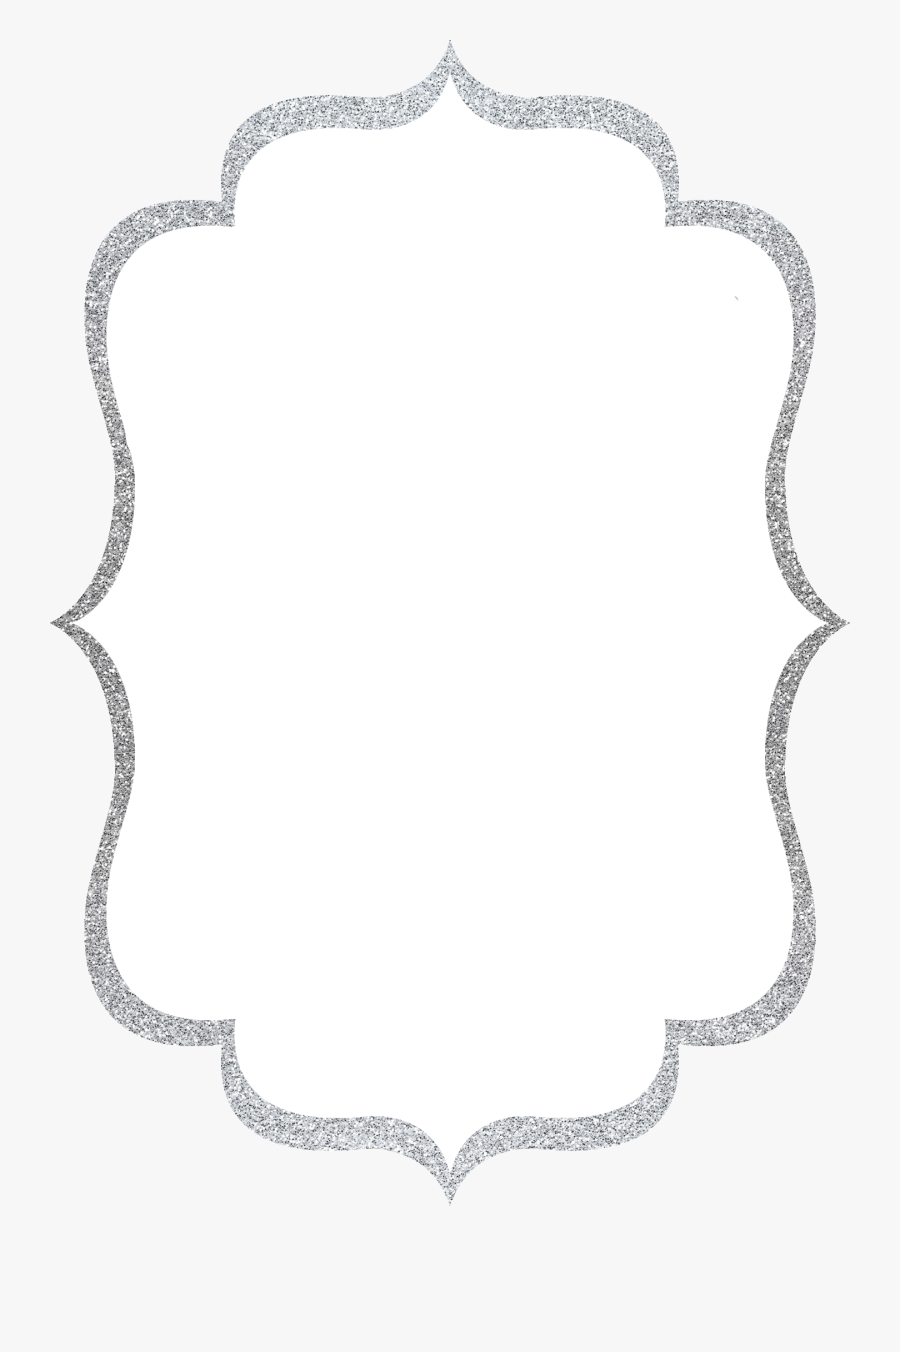 Silver Glitter Border Png , Free Transparent Clipart.